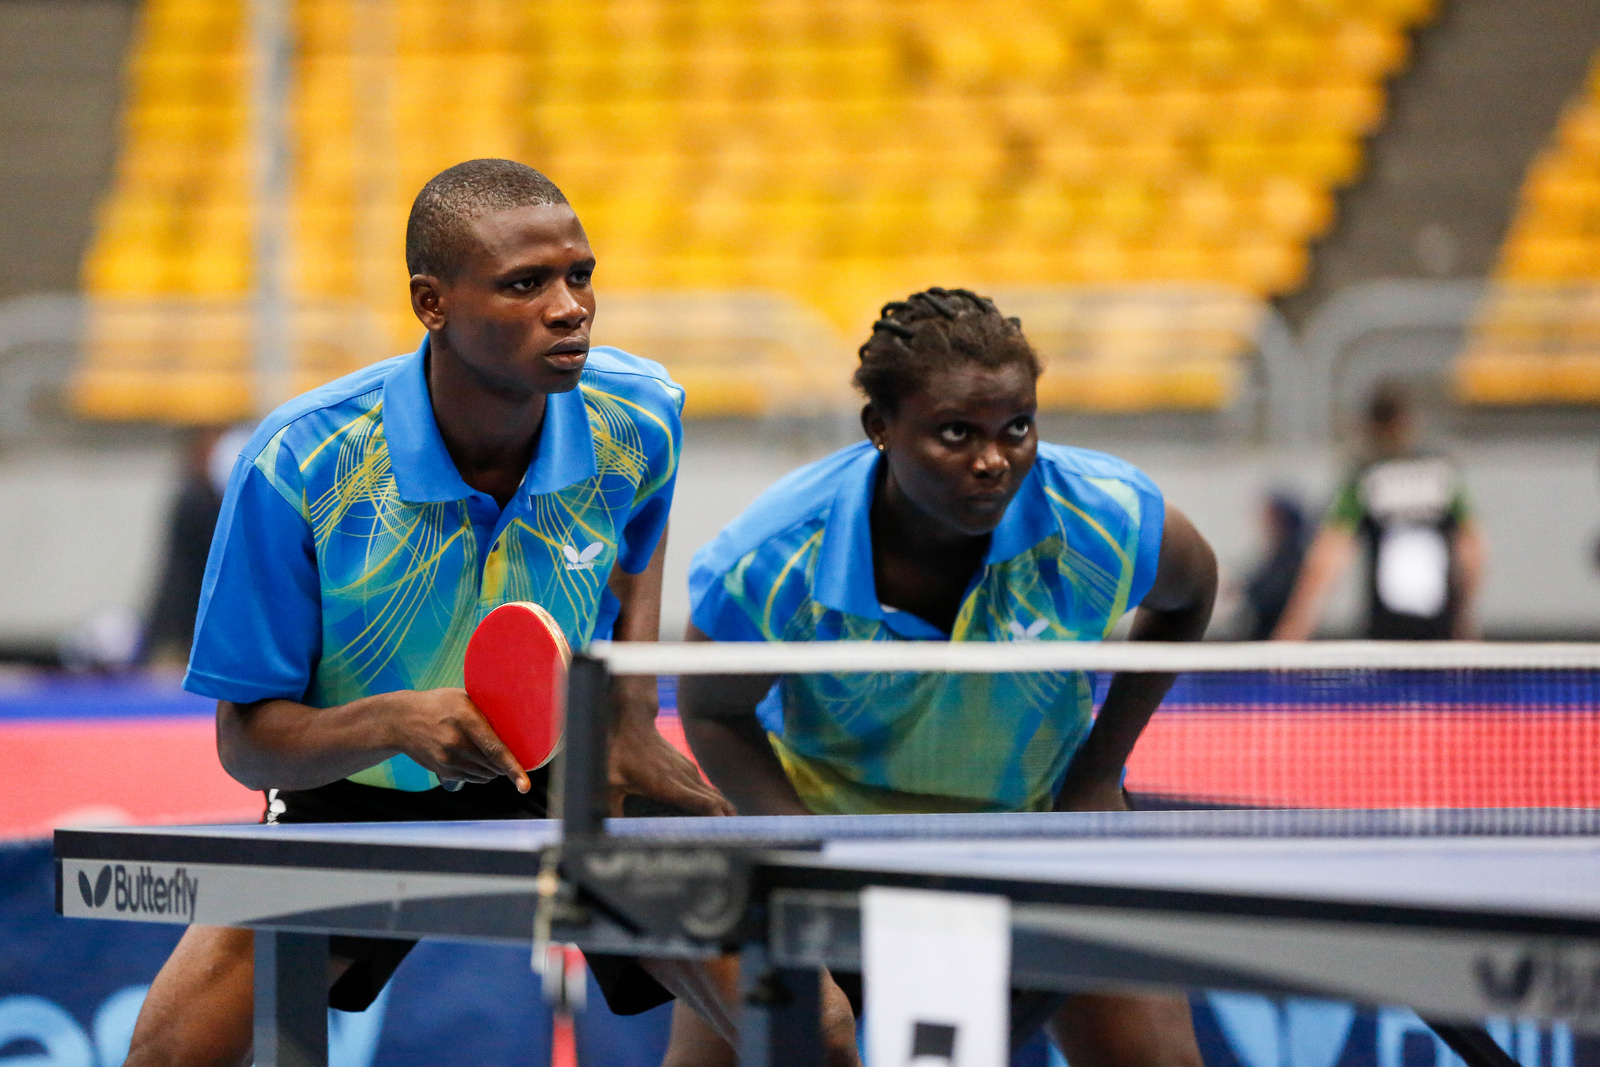 Ittf african junior championships nigeria wins silver - African table tennis federation ...